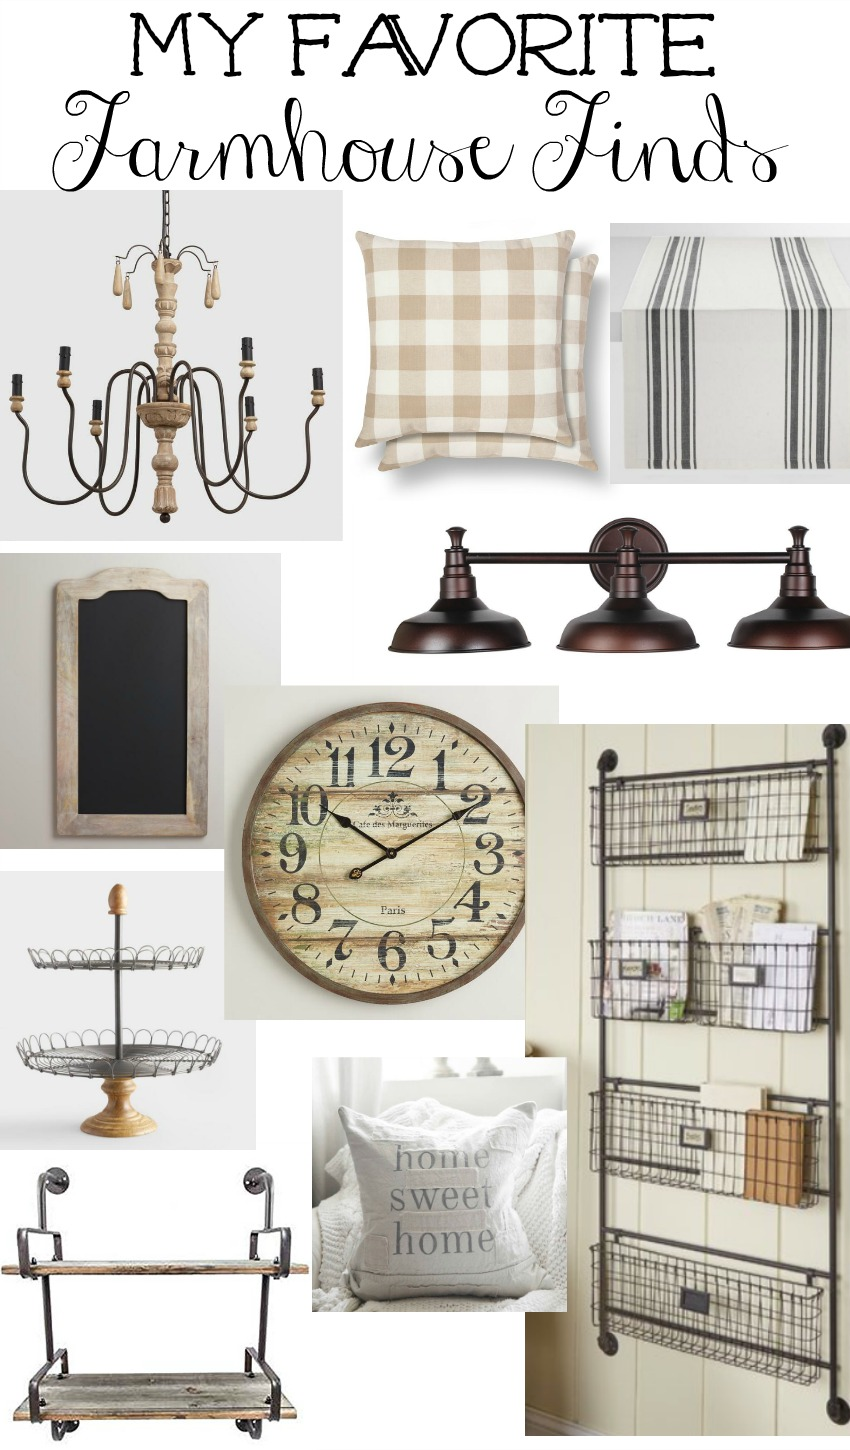 My Favorite Farmhouse Finds. Affordable farmhouse style decor!